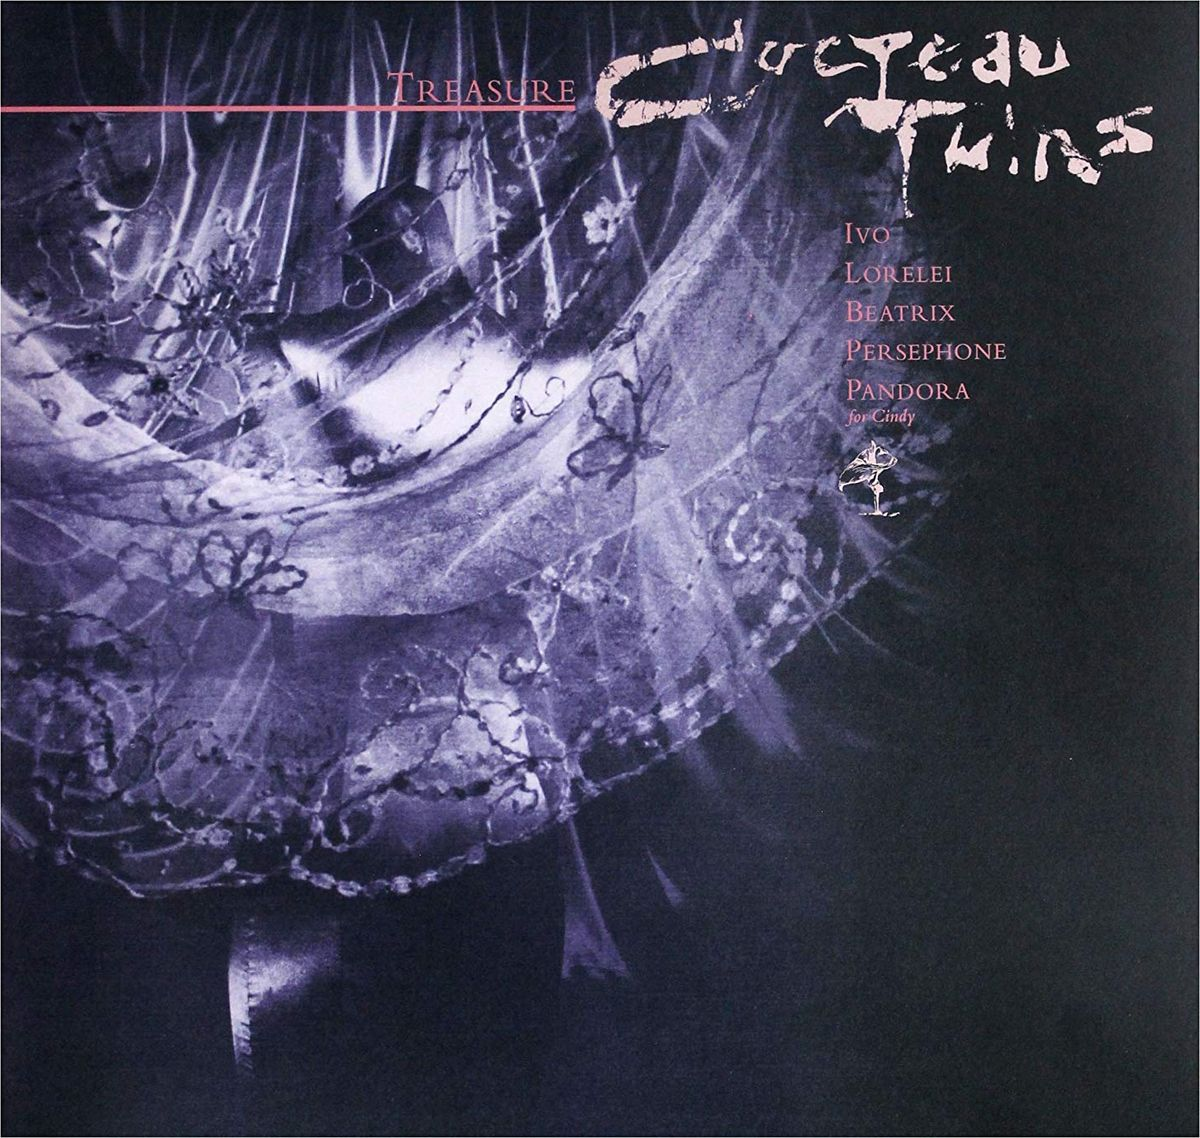 Cocteau Twins Twins. Treasure (Re-issue Edition) (LP)